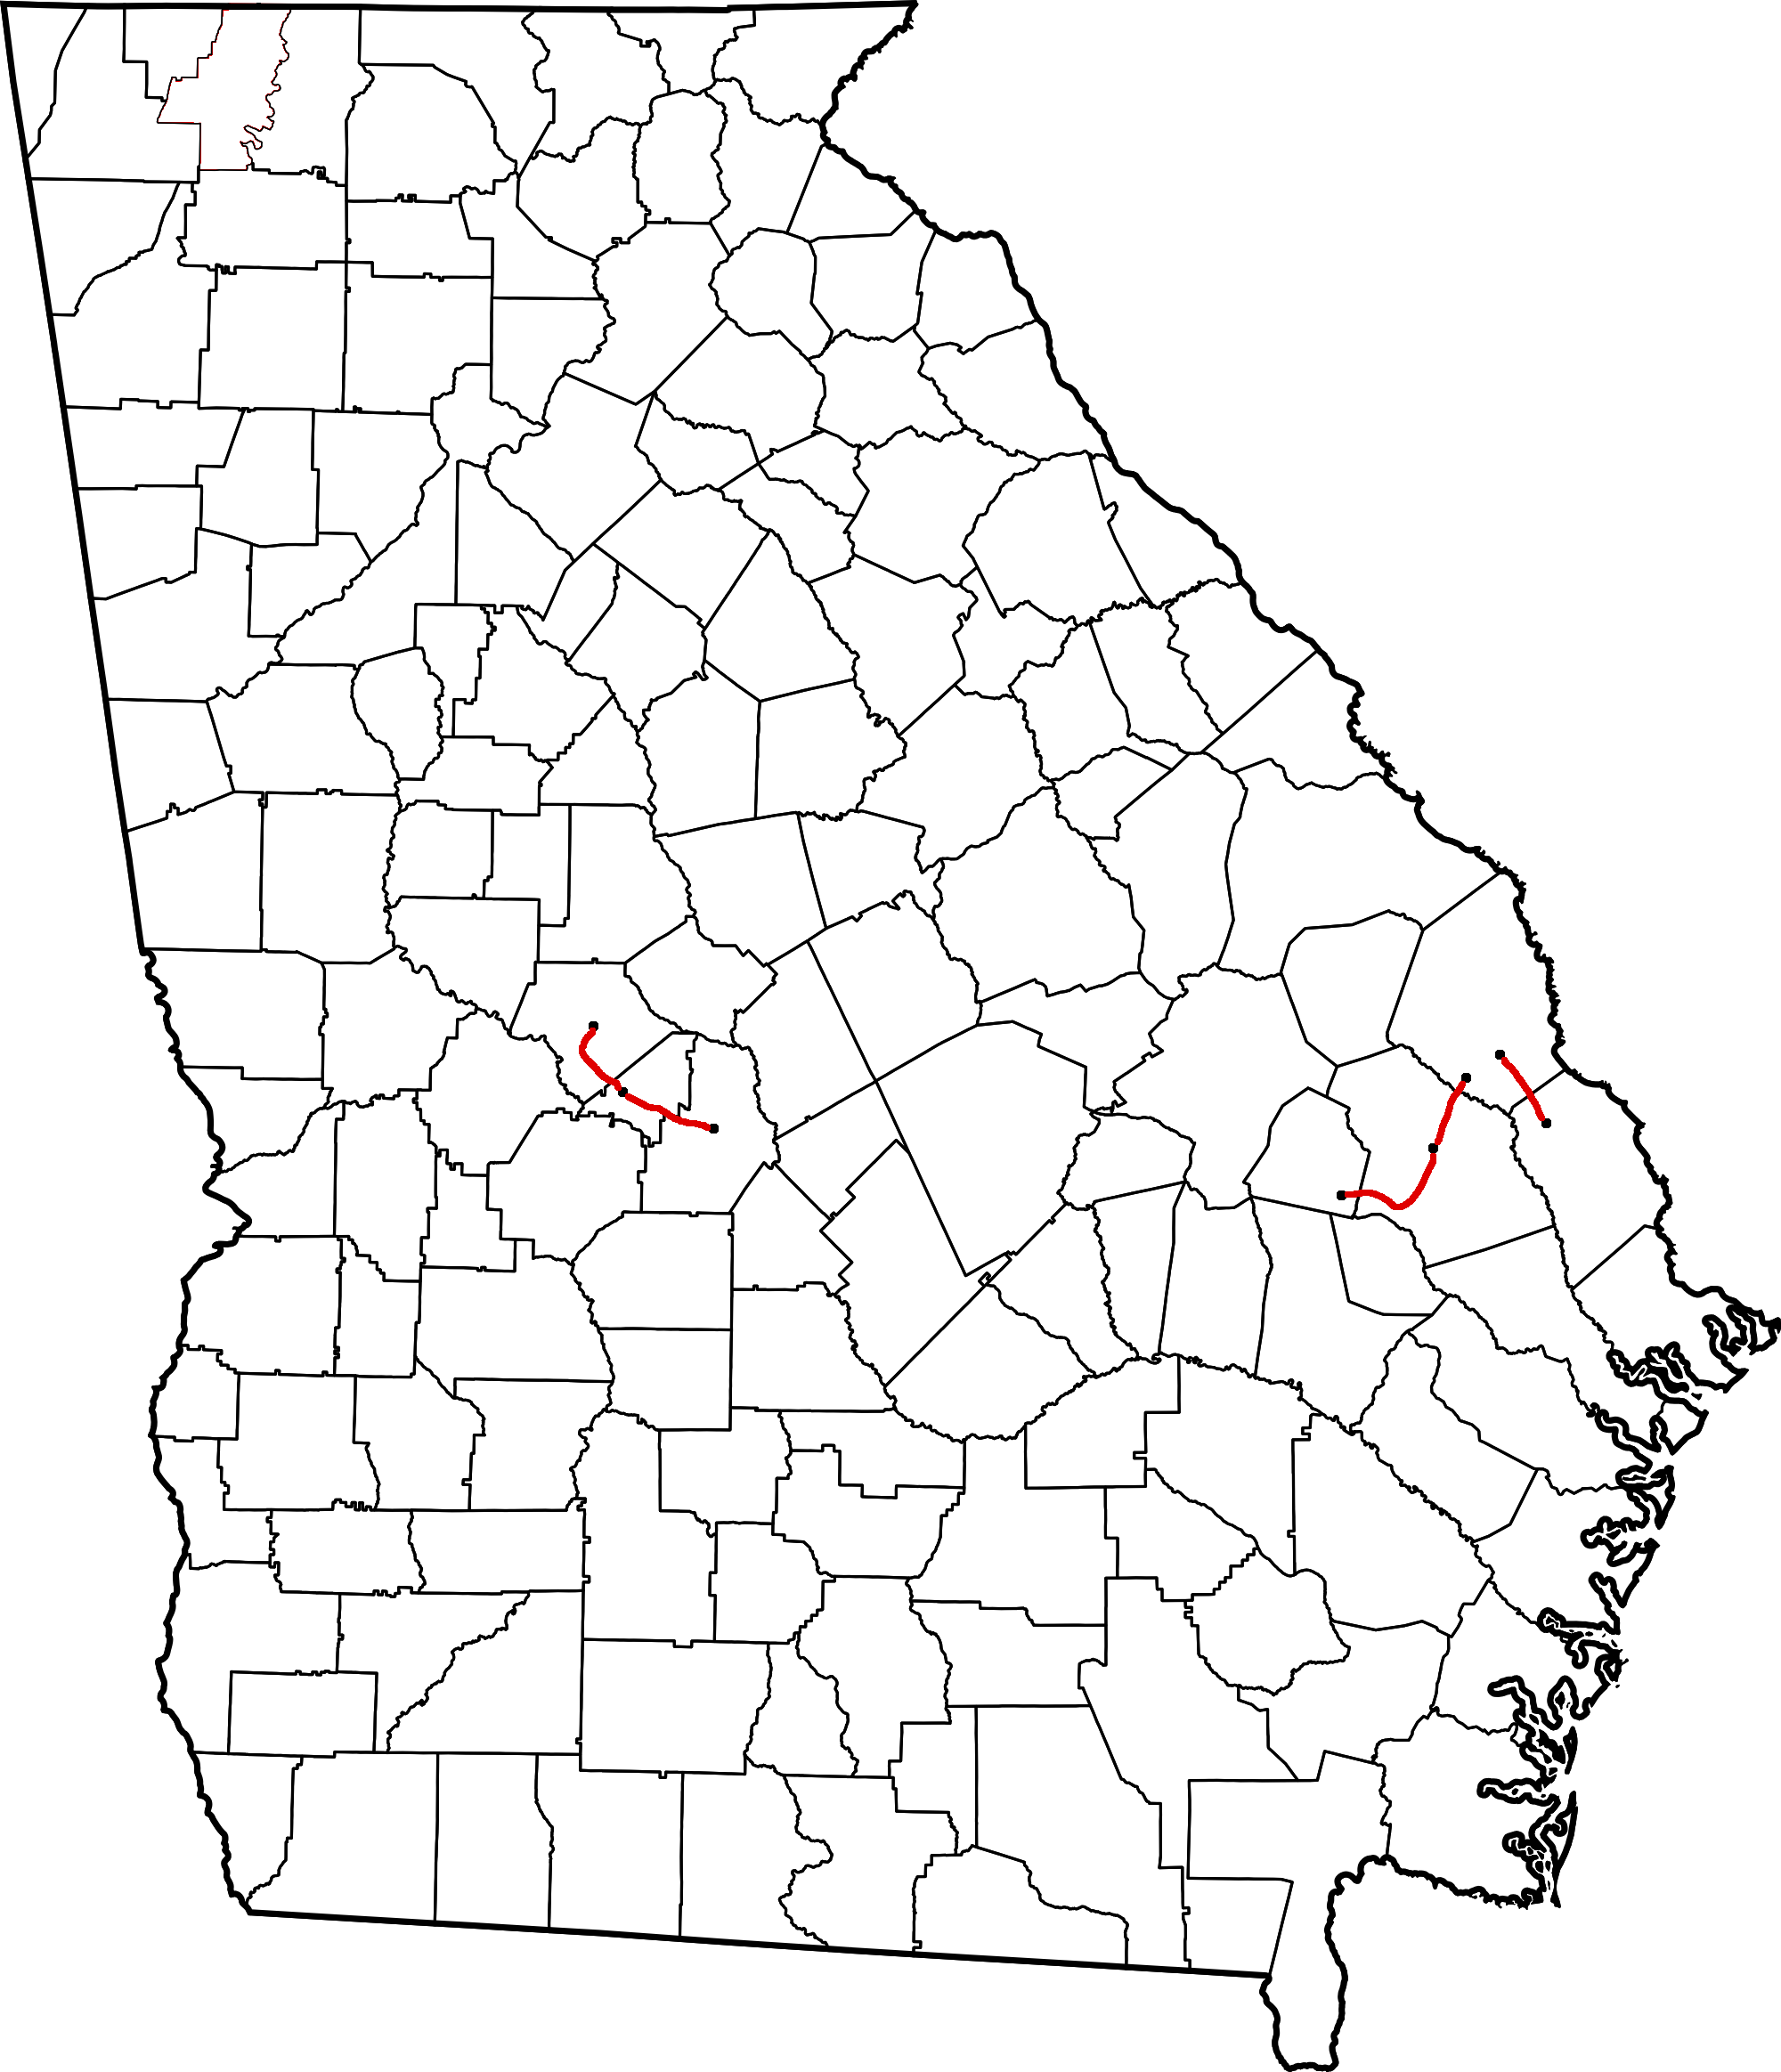 FileGeorgia Midland Railroad Route Mappng Wikimedia Commons - Georgia map with county lines